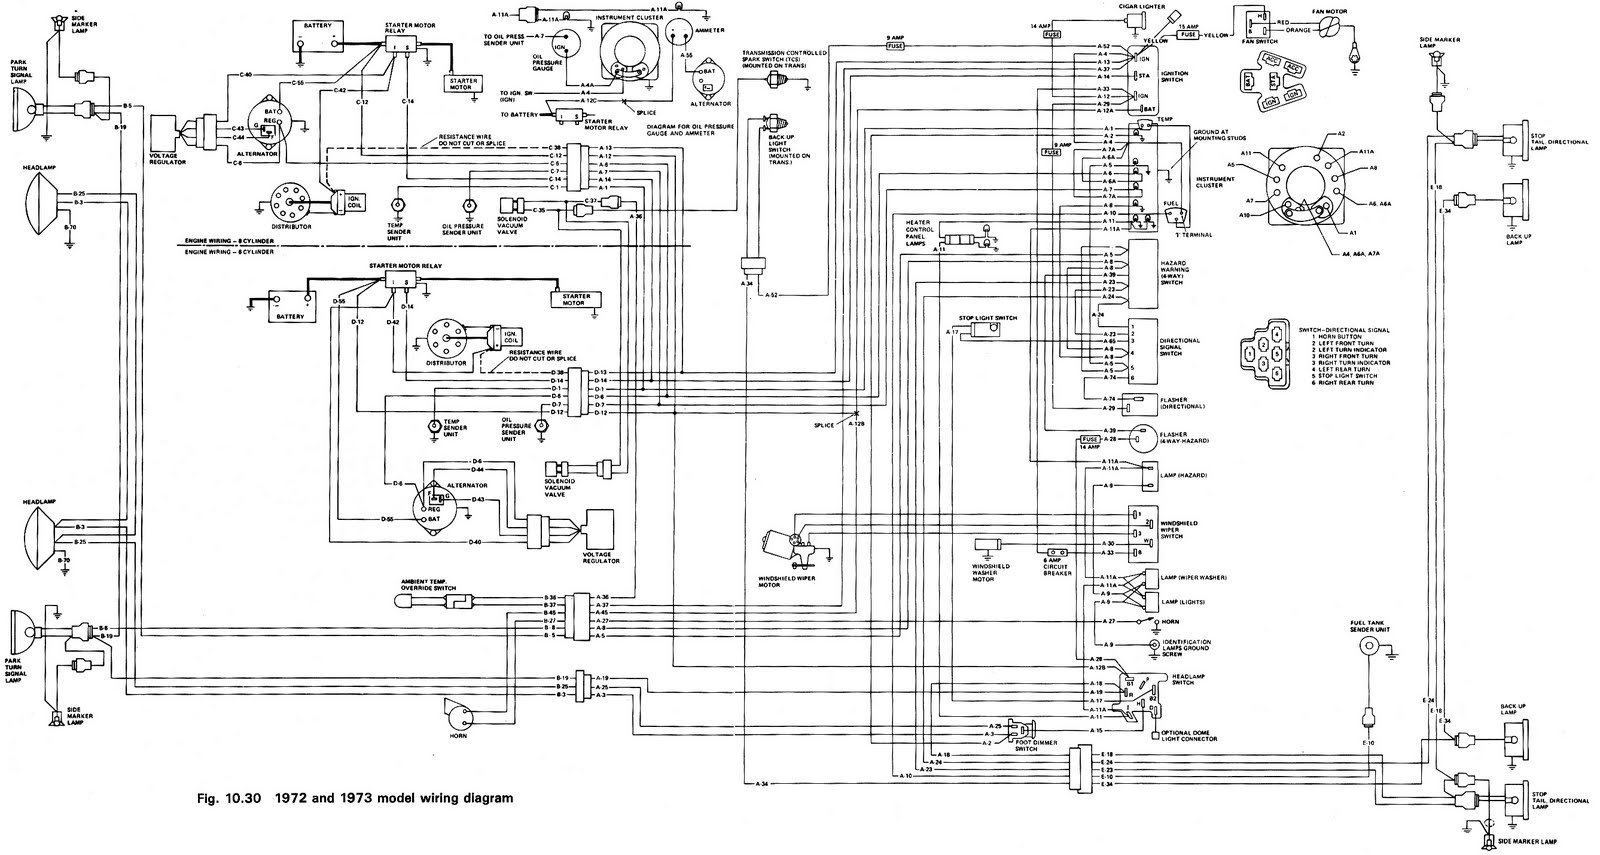 66 Jeep Cj5 Ke Wiring Diagram. Jeep. Auto Wiring Diagram